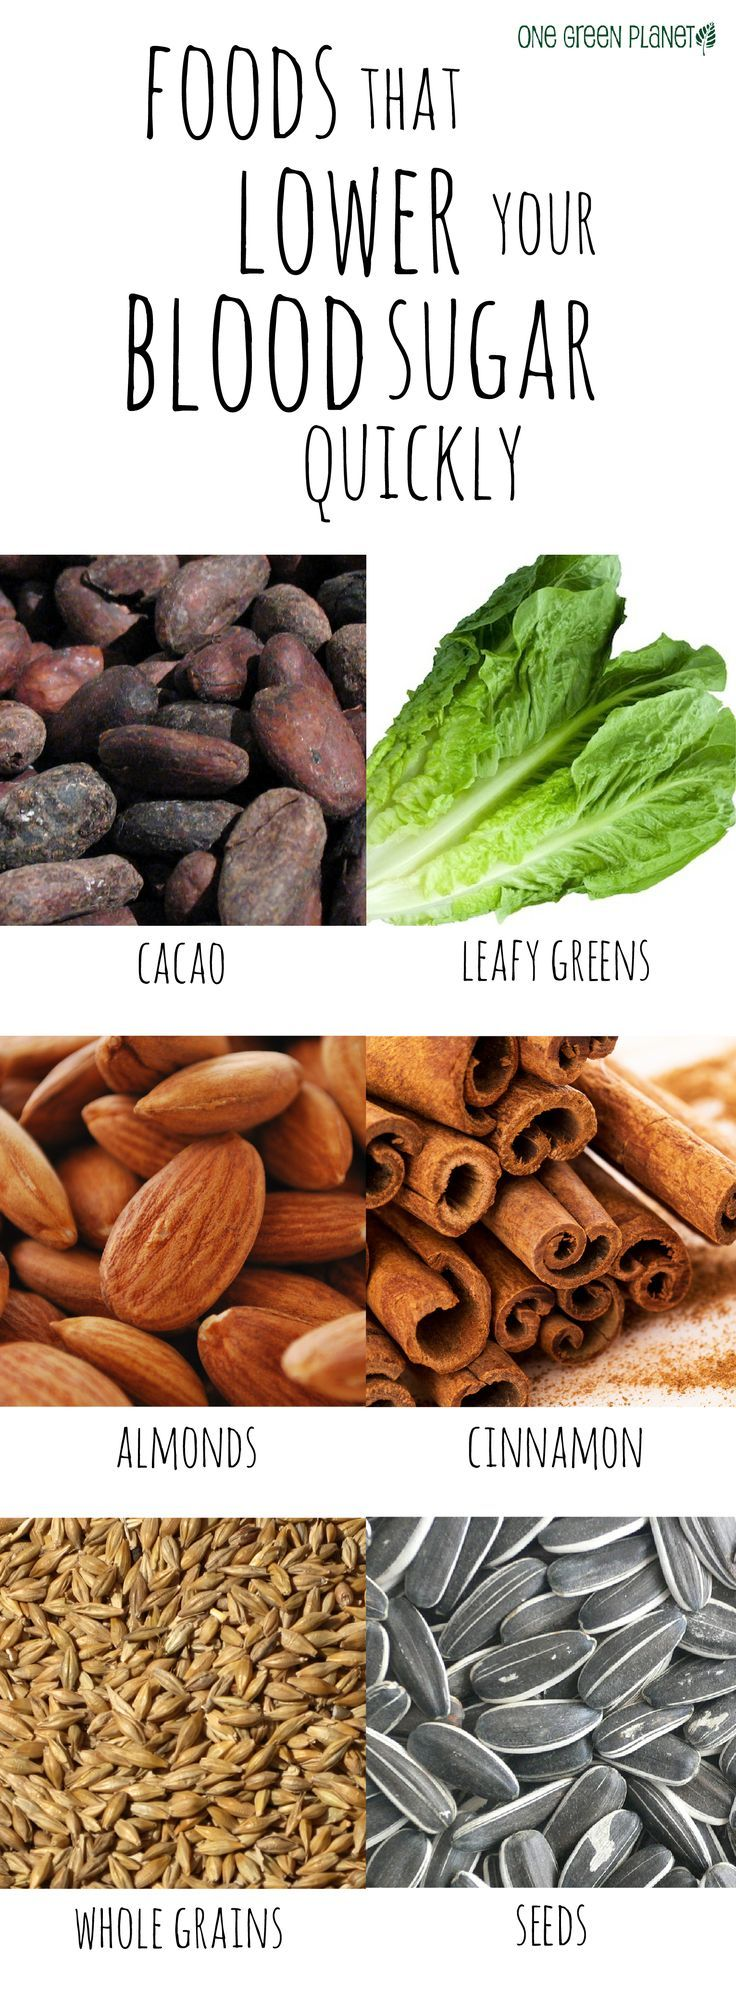 5 foods that lower your blood sugar quickly nutrition